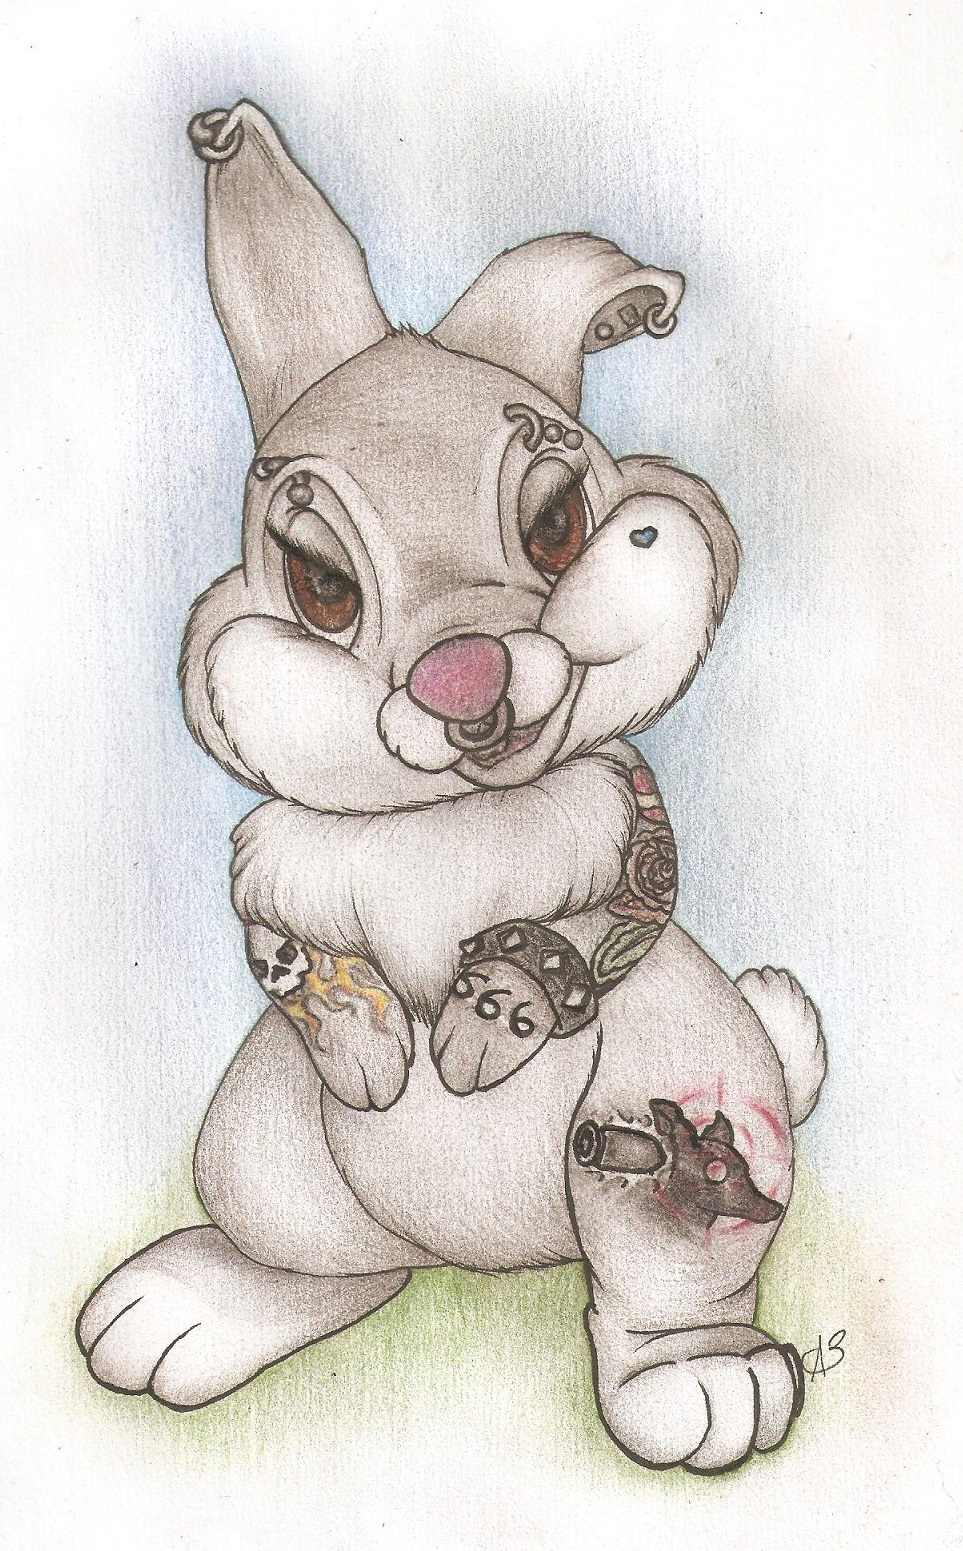 clipart royalty free stock badass Thumper by aggrobaer on DeviantArt